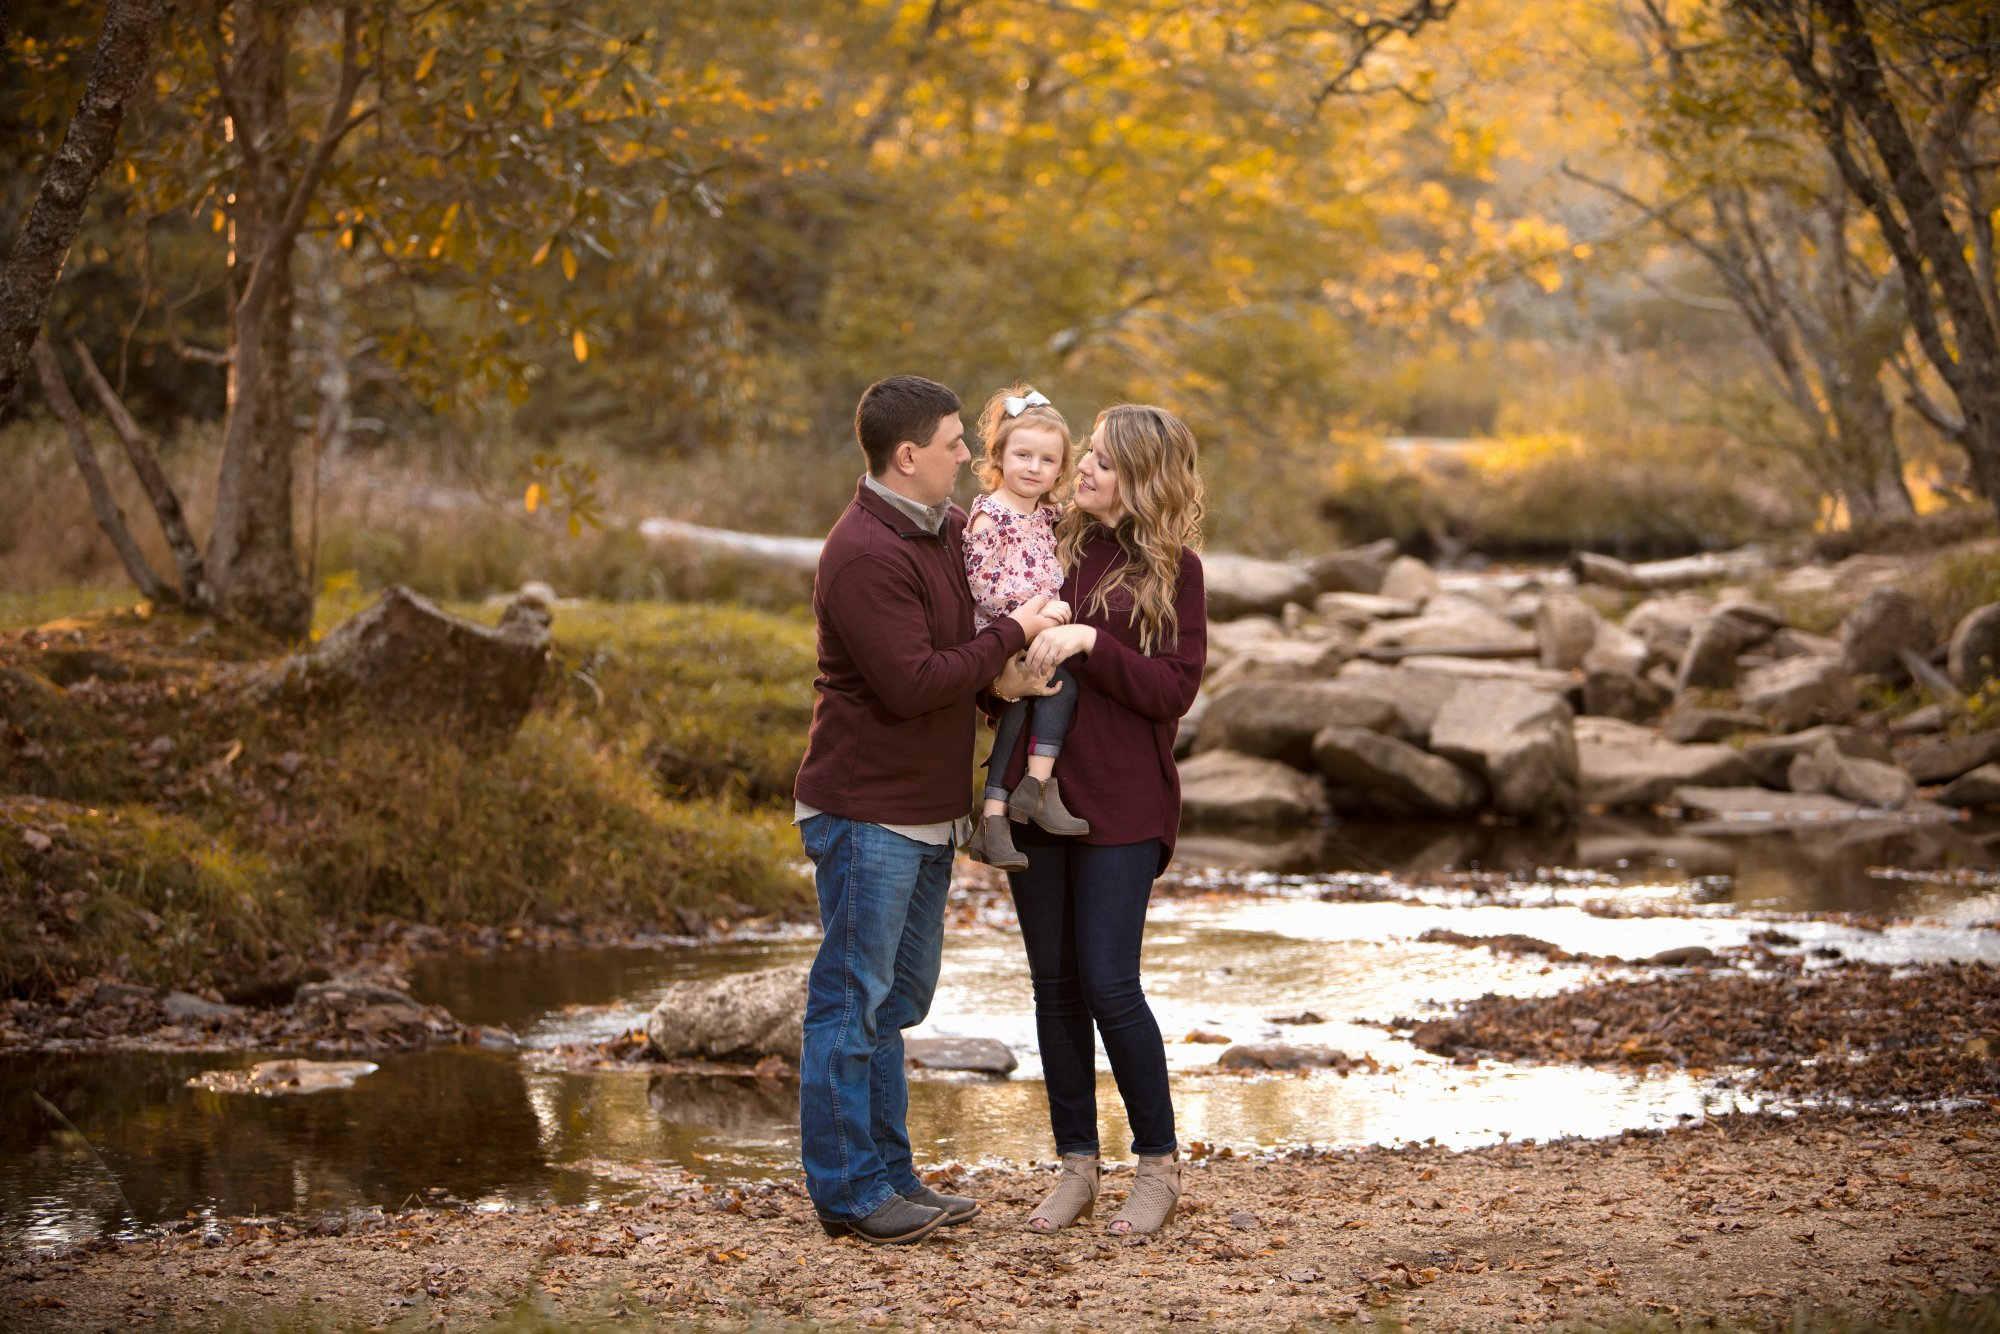 Aycoth_Family_Fall_2019_010.jpg